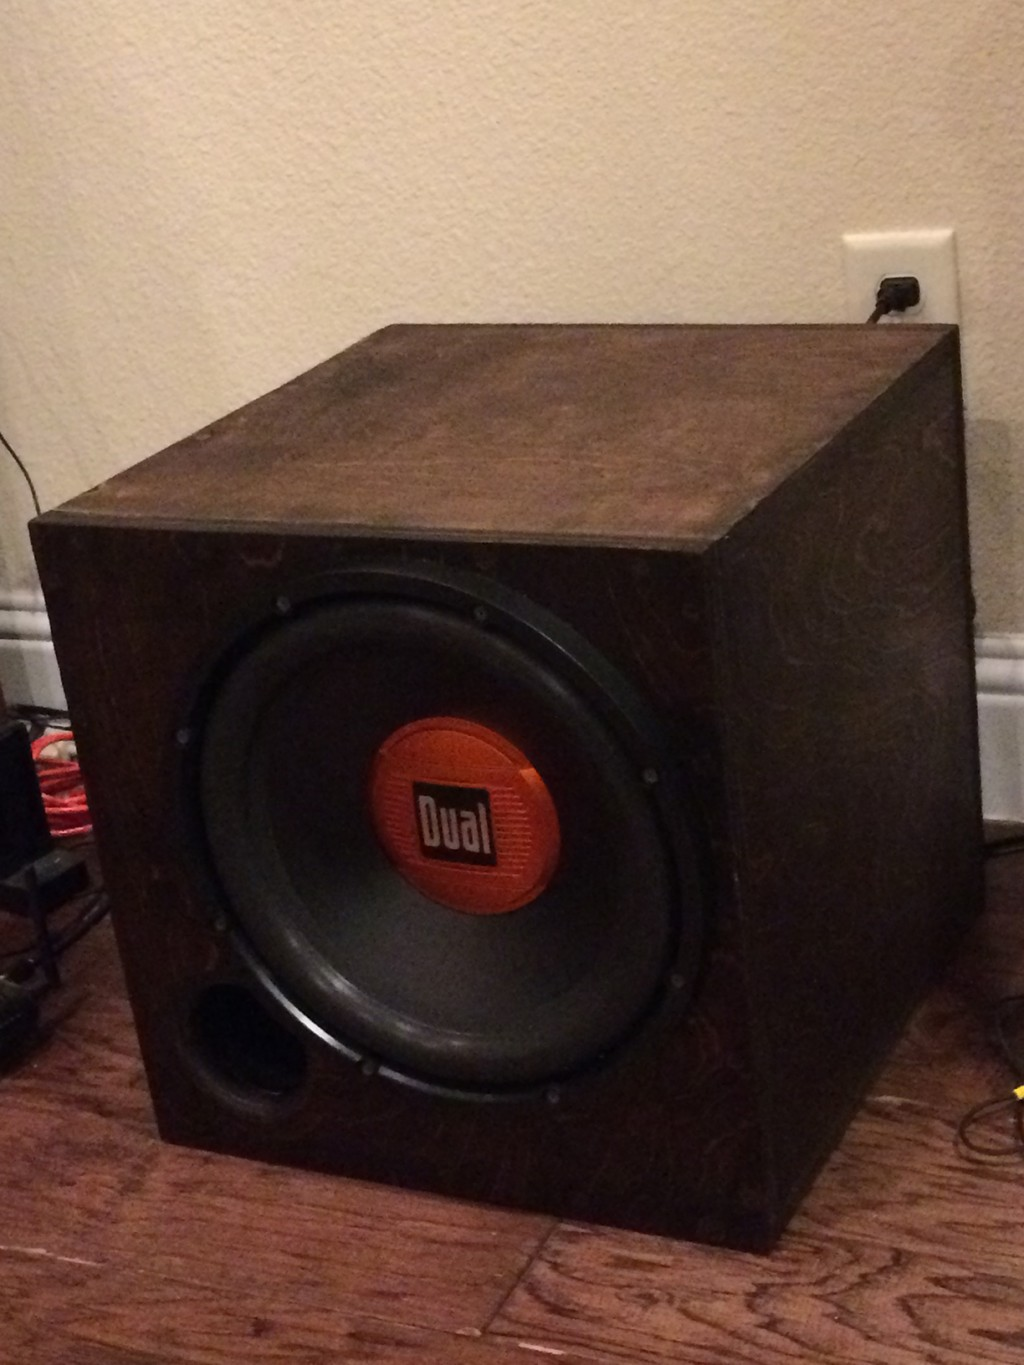 12 inch subwoofer tuned @ 30hz